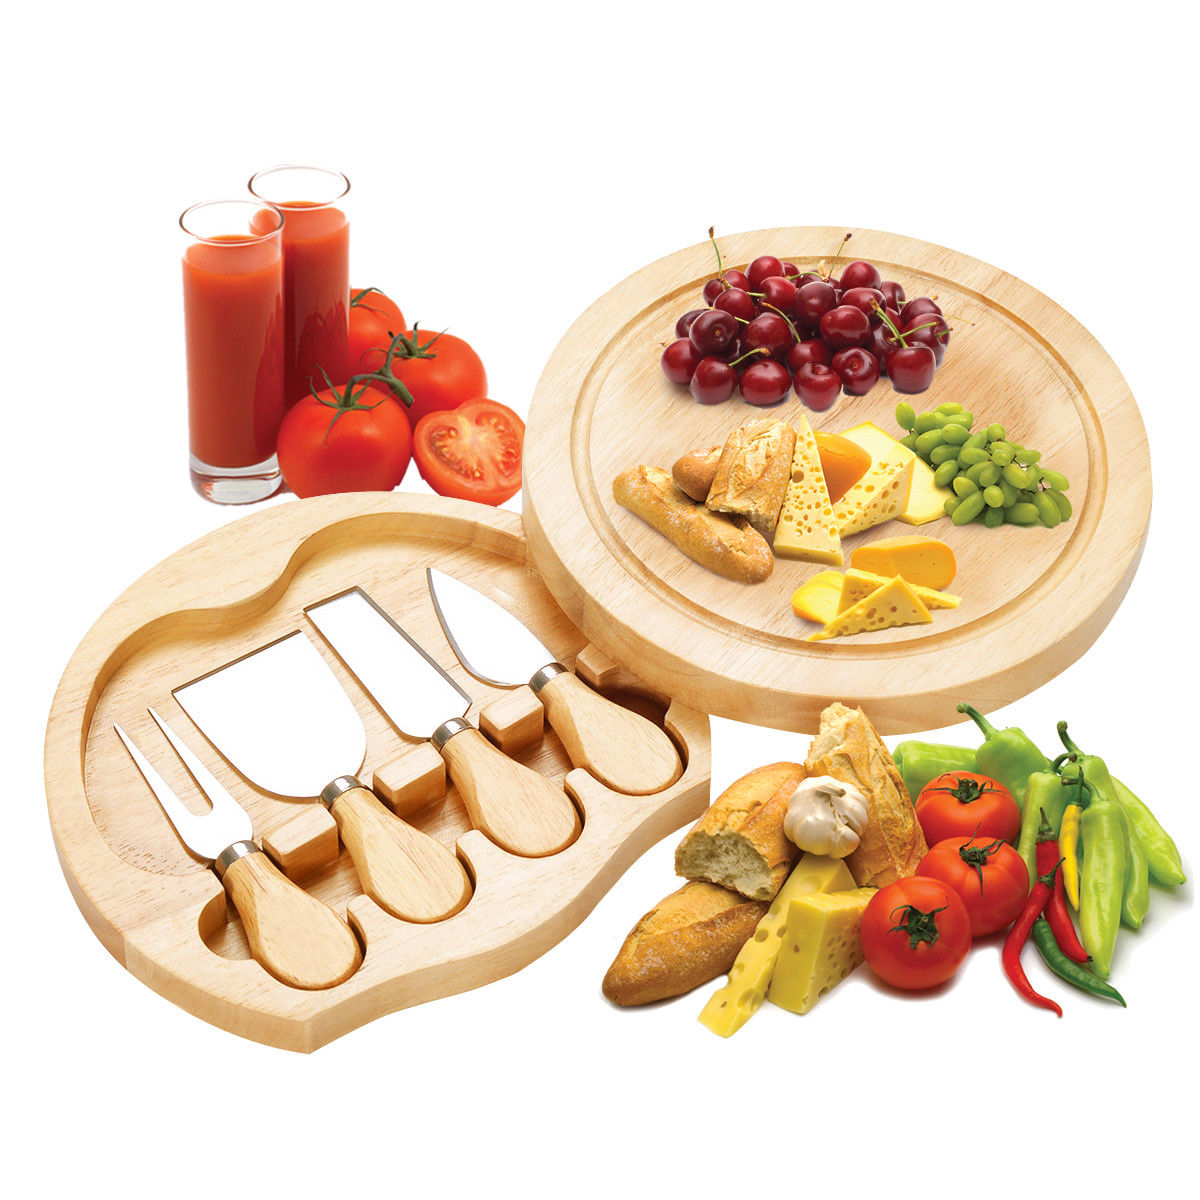 Costway 5 PCS Stainless Steel Cheese Knife Set with Round Wood Slide Out Cutting Board